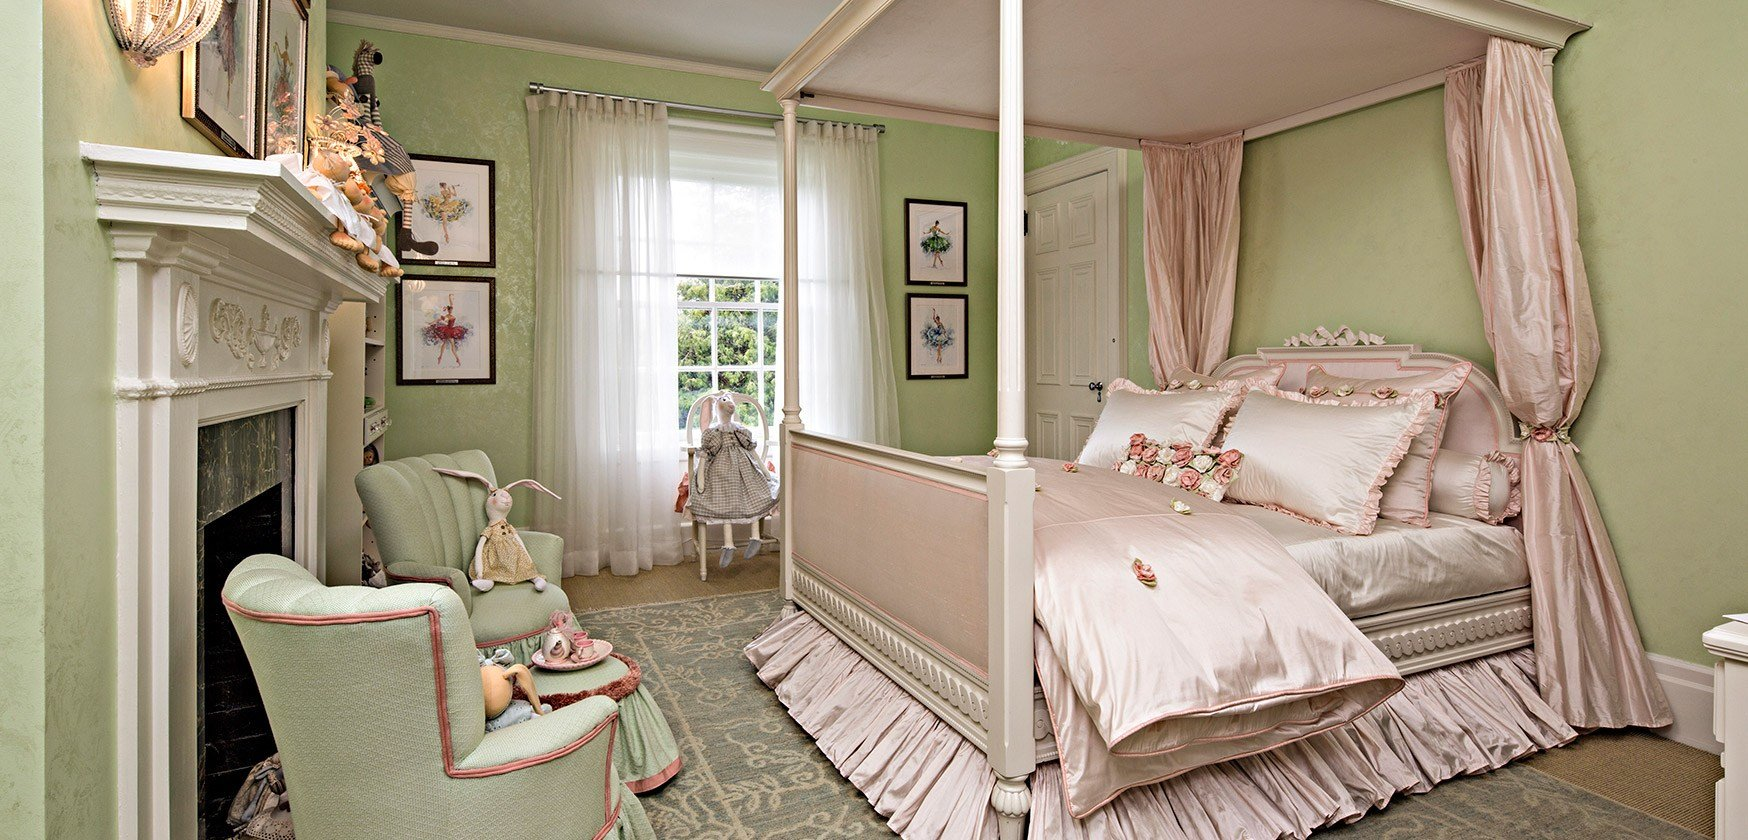 Best T**N Bedroom Interior Design Sleeping Beauty Zoyab Ny With Pictures